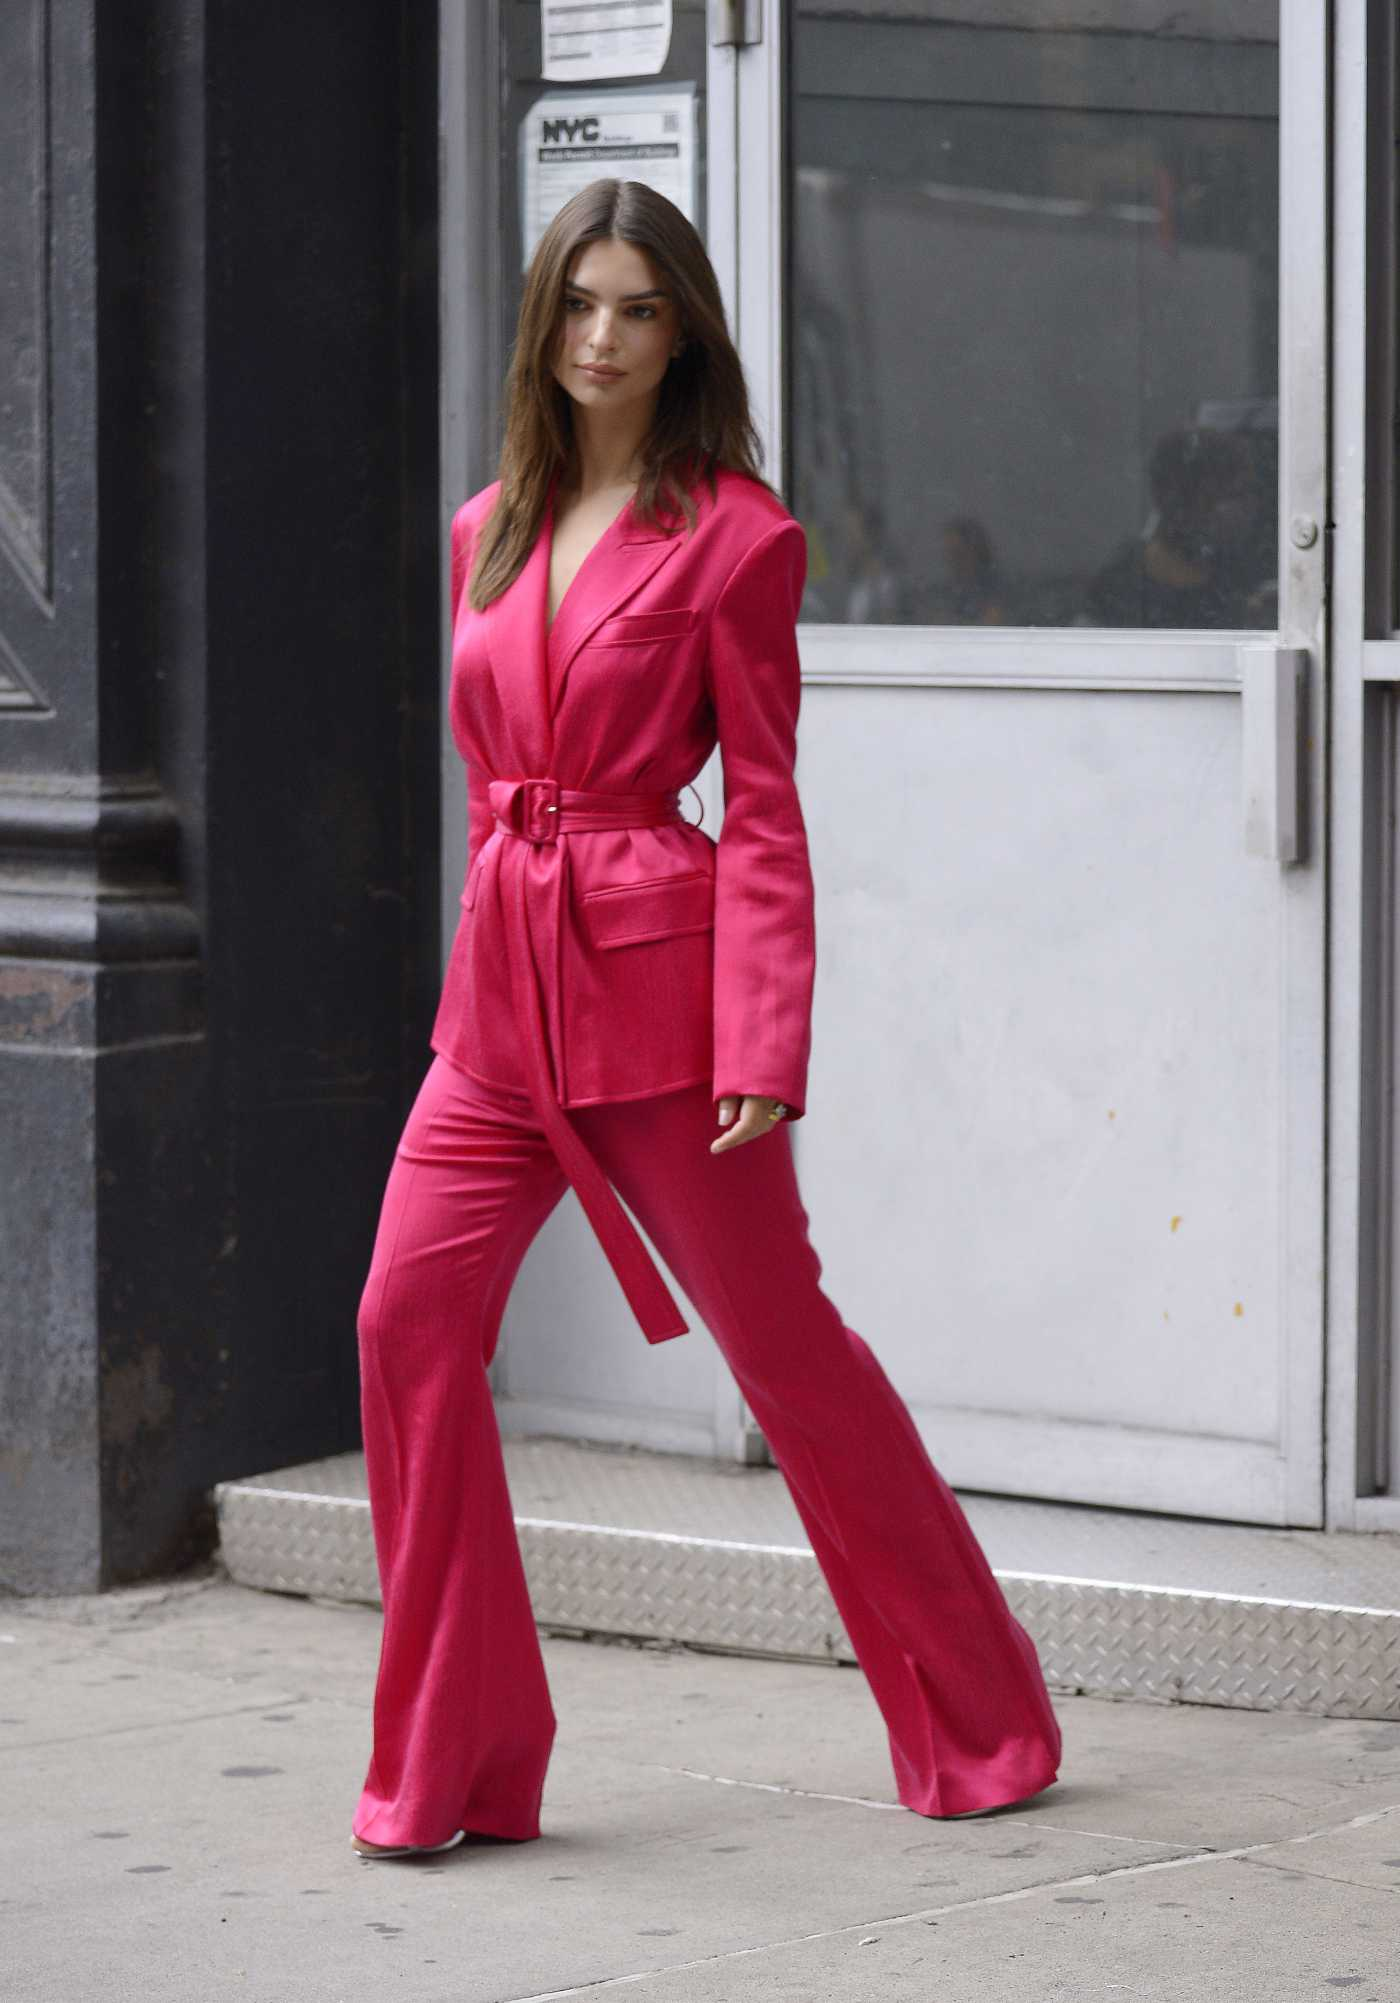 Emily Ratajkowski in a Pink Suit Was Seen Out in NYC 06/17/2019